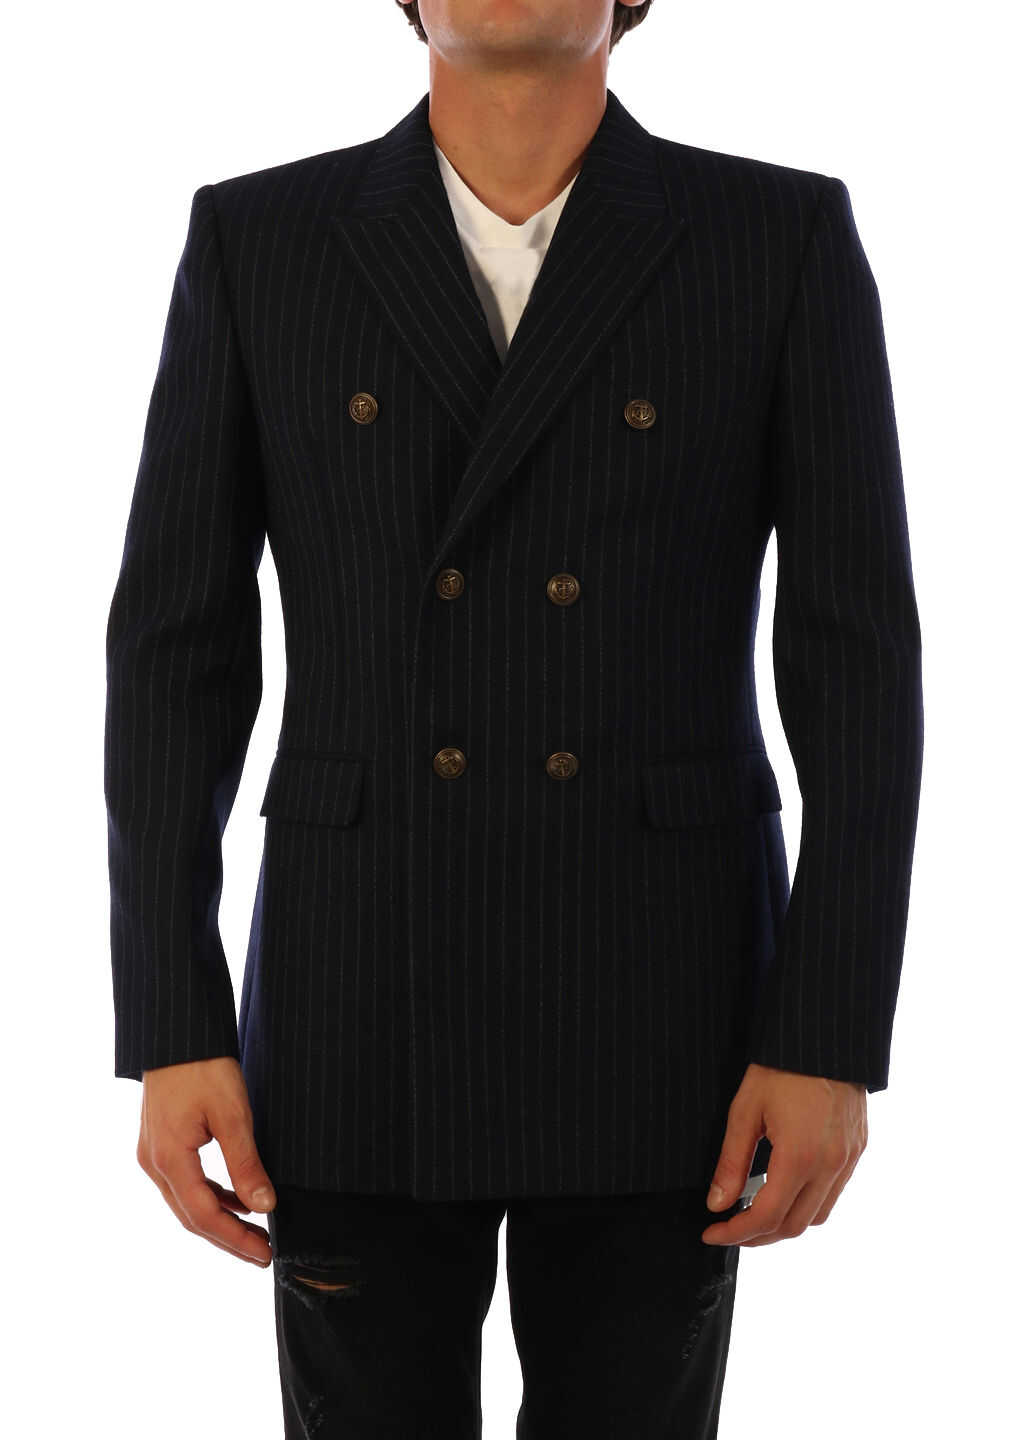 Saint Laurent Wool Jacket Blue imagine